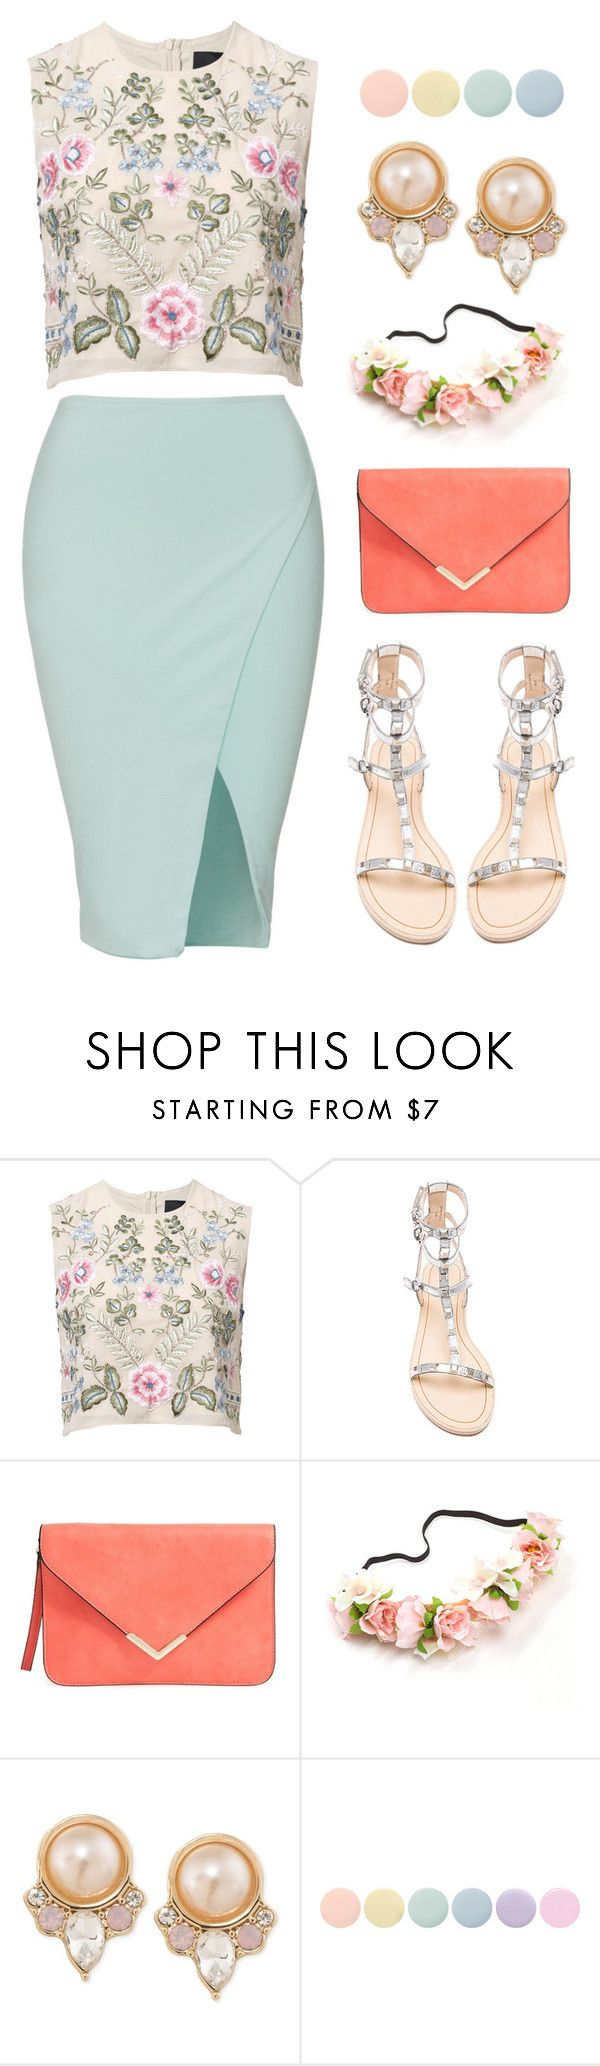 """Candy crush."" by orpitaazmiri ❤ liked on Polyvore featuring Needle & Thread, Rebecca Minkoff, Carolee and Deborah Lippmann"